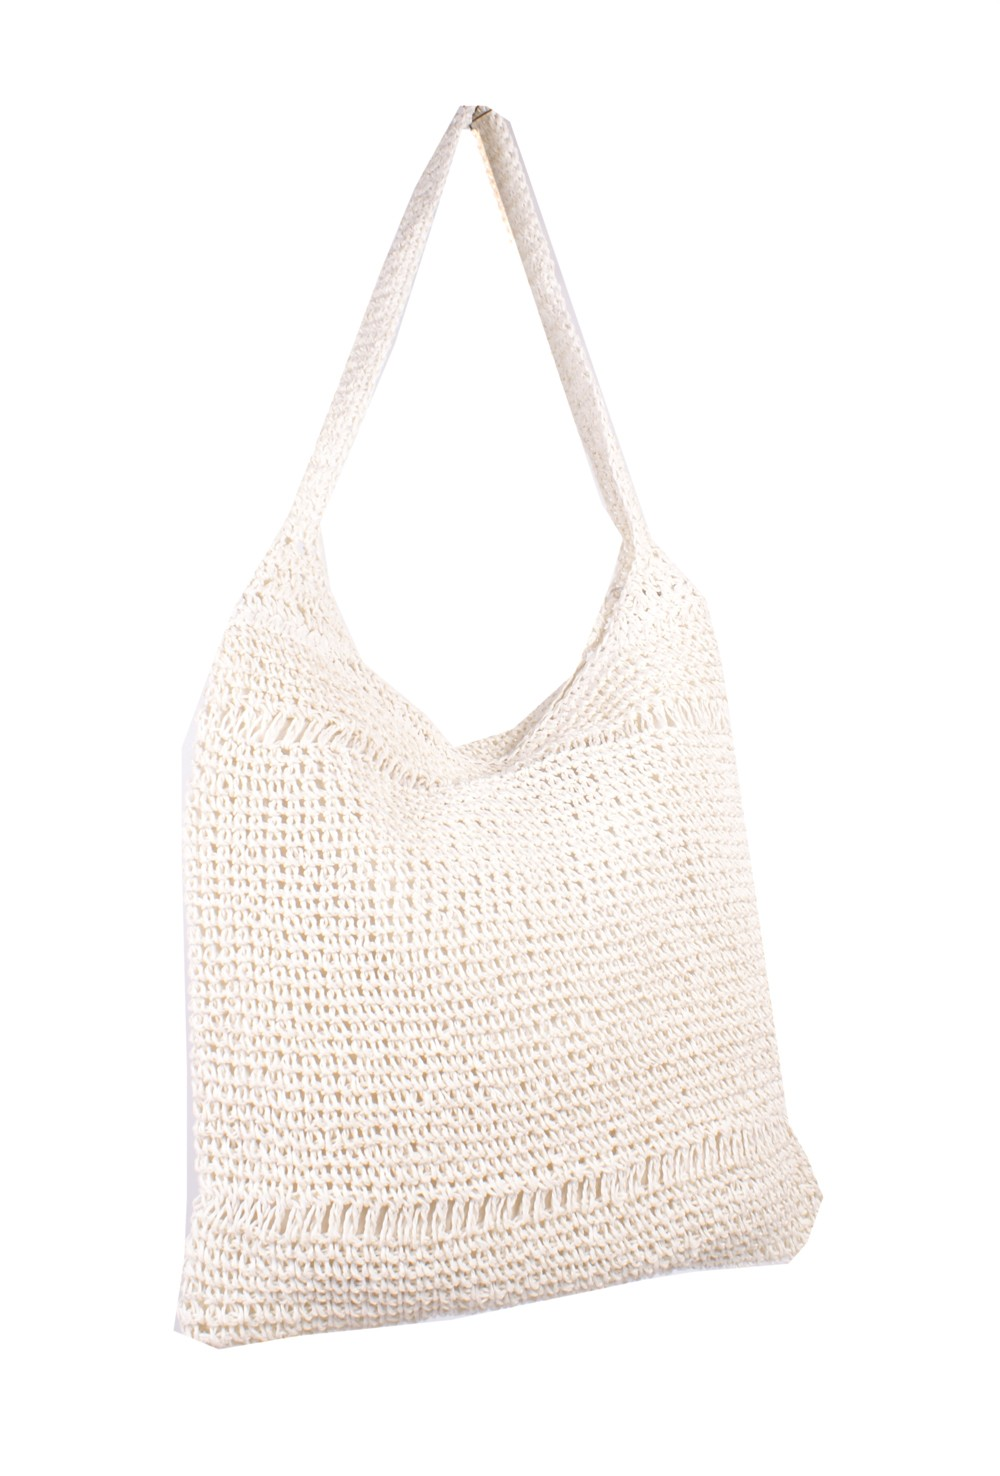 KNIT SHOPPER WHITE